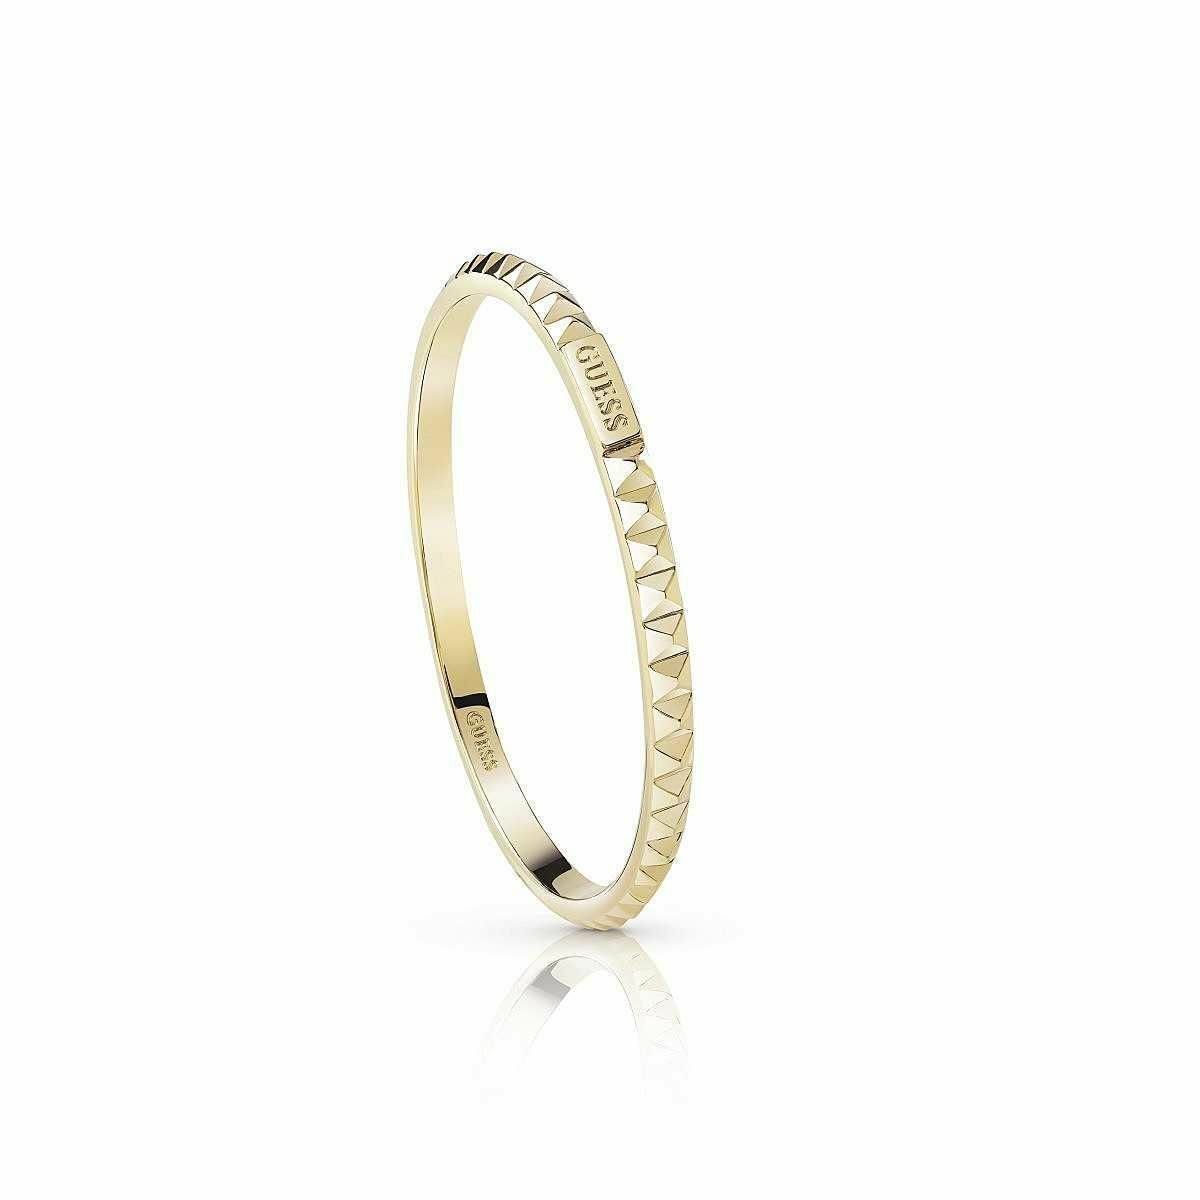 Bracciale women Gioielli Guess Hoops I Did It Again Bigiotteria Pvd gold